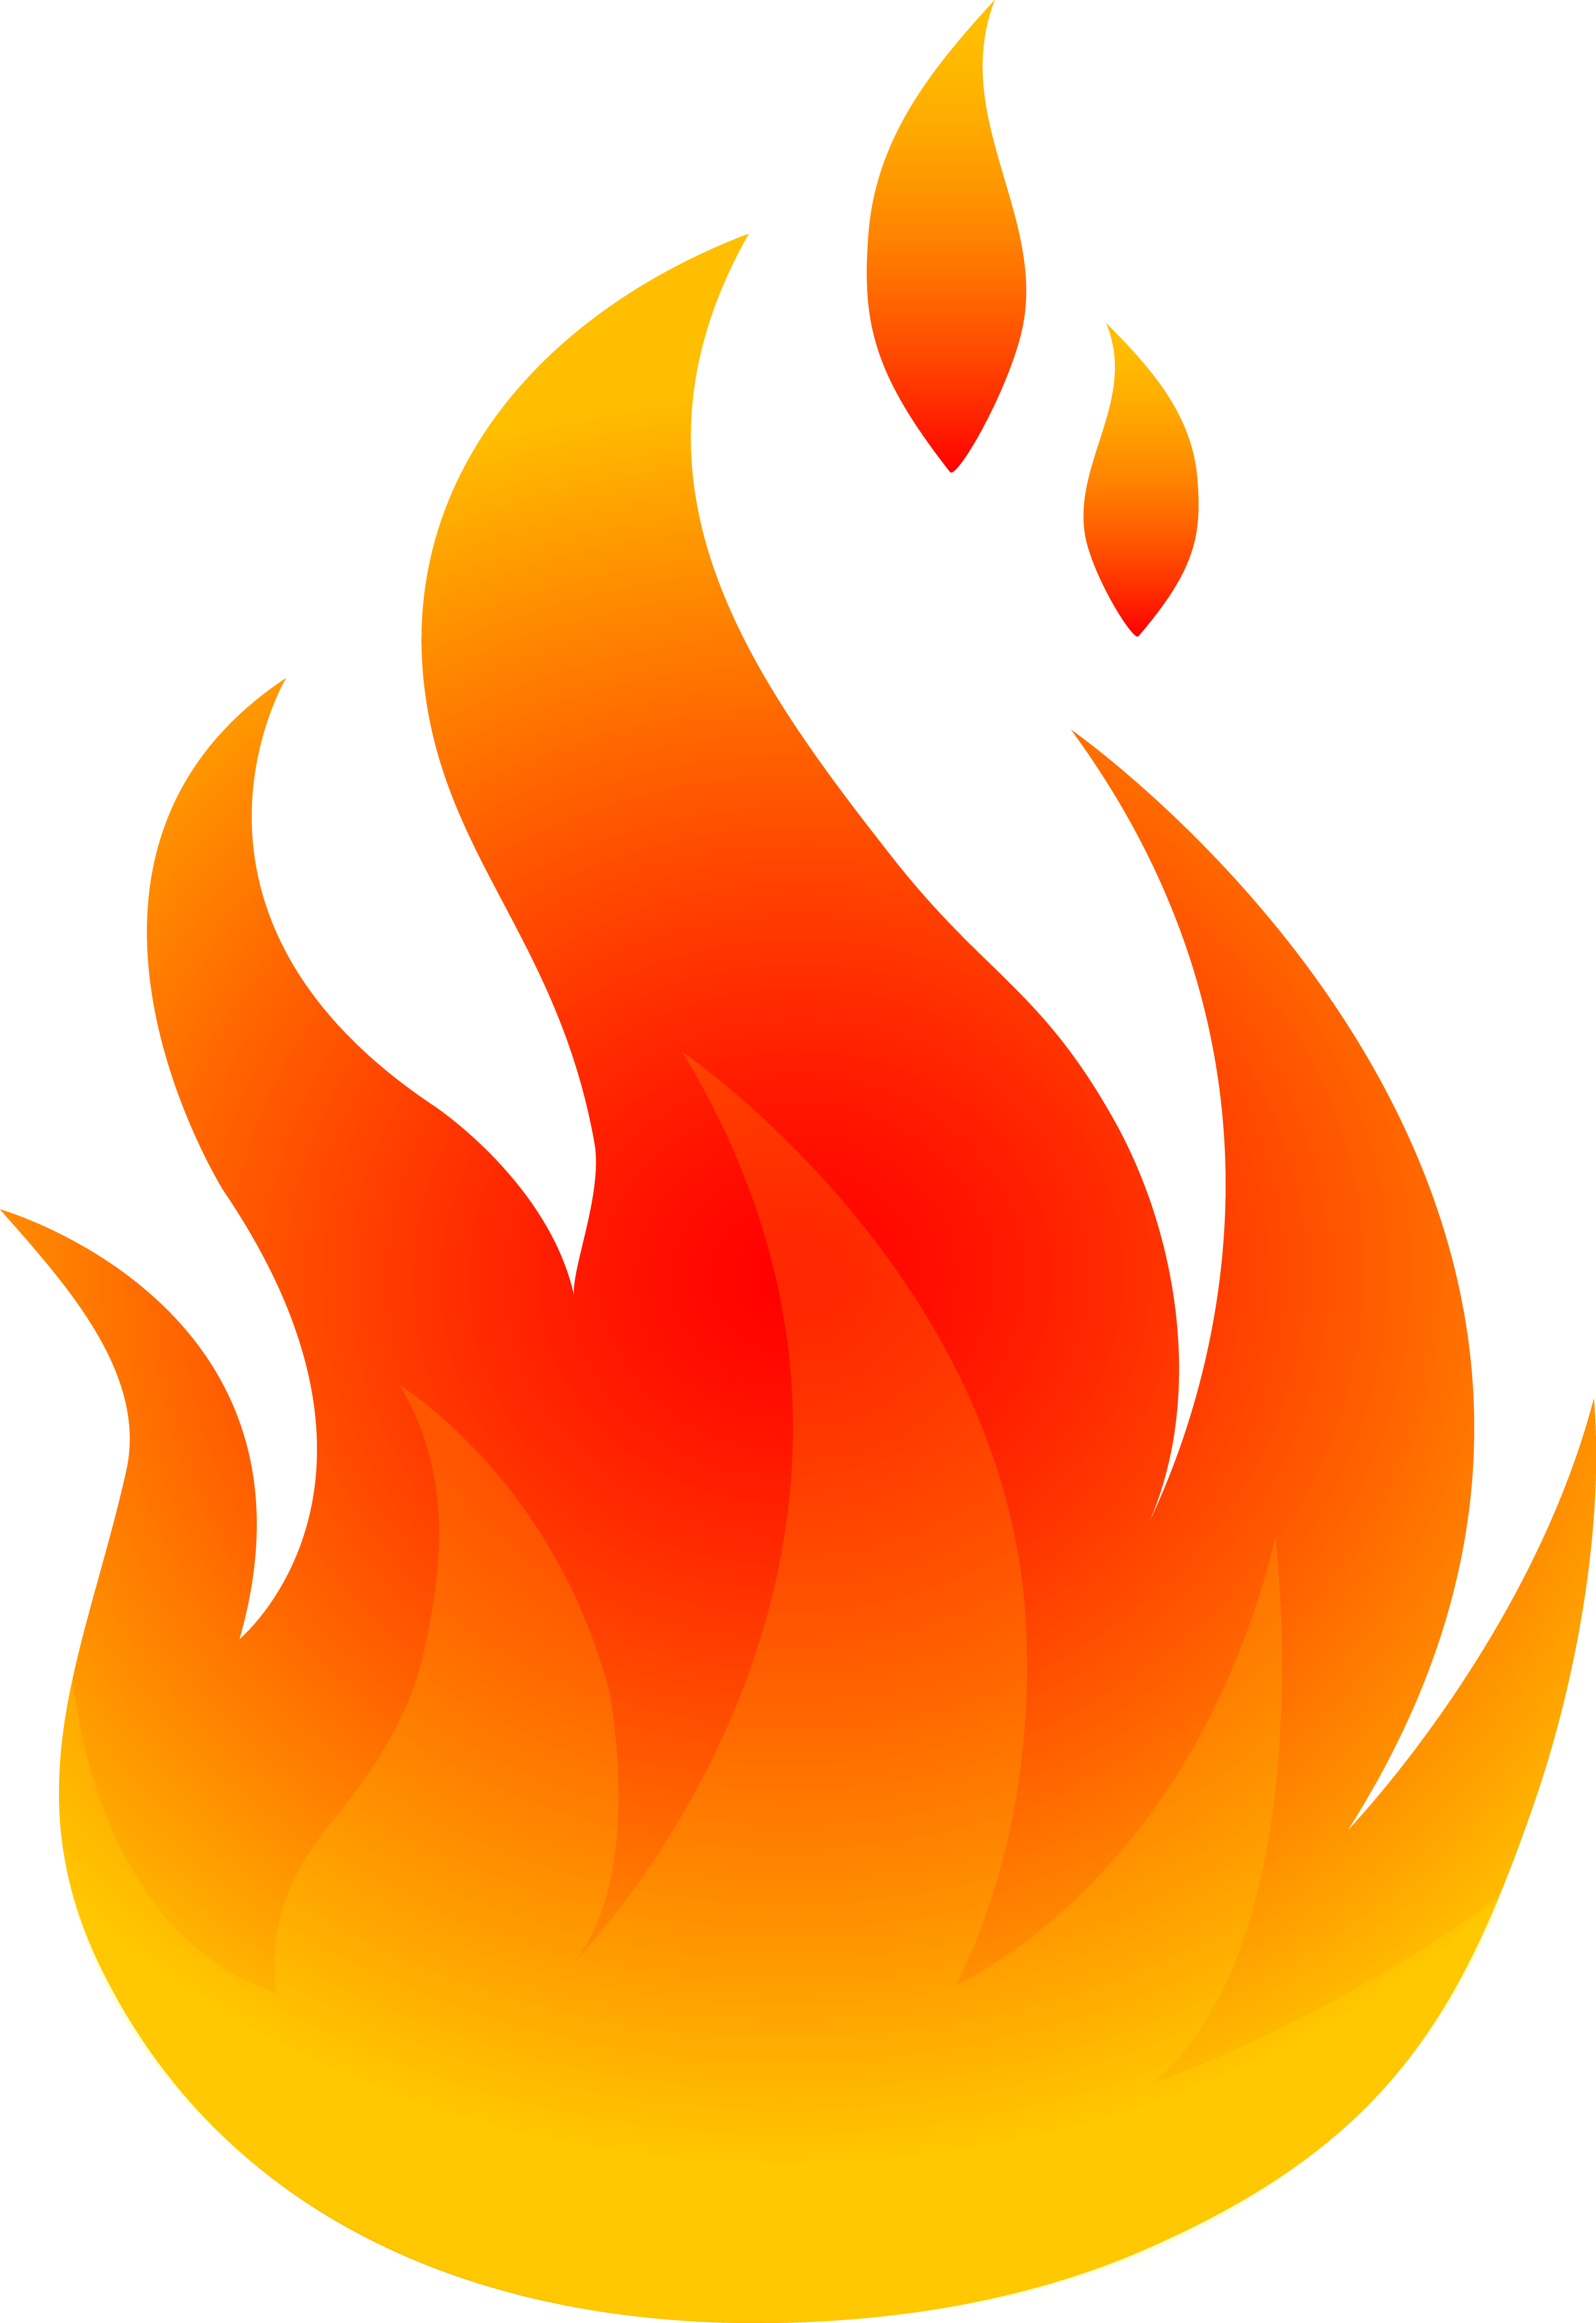 Fire clipart download clipart transparent Fire Flame Clip art - Realistic Flame Cliparts png download - 4830 ... clipart transparent